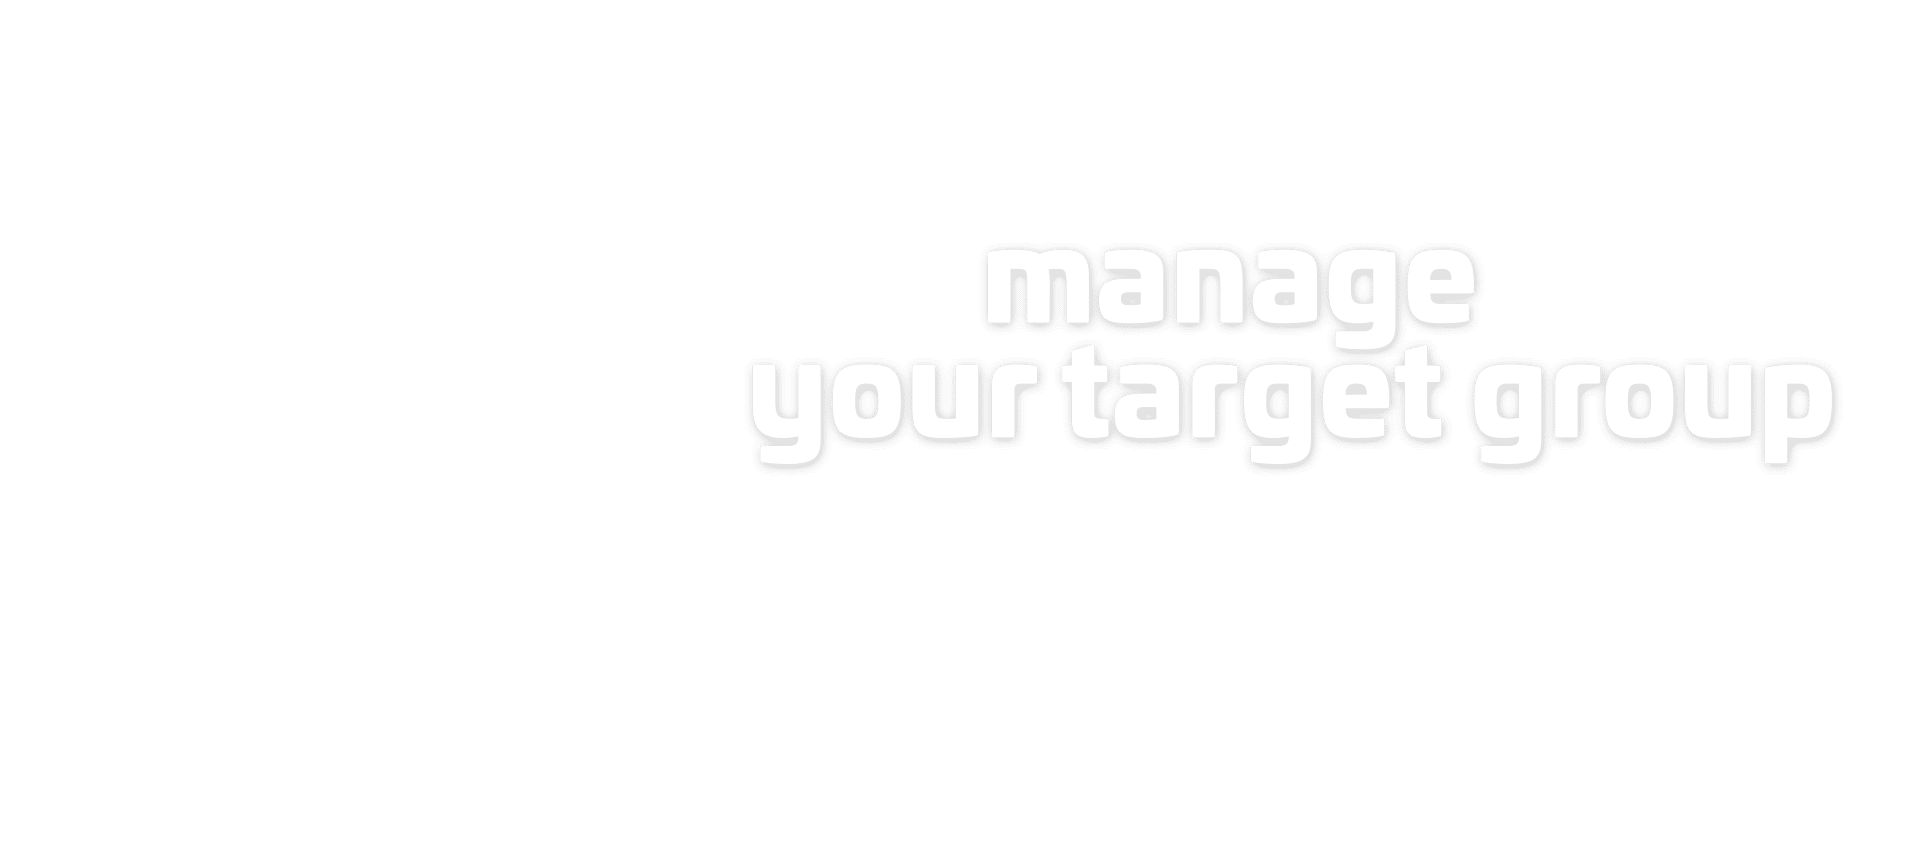 manage your target group